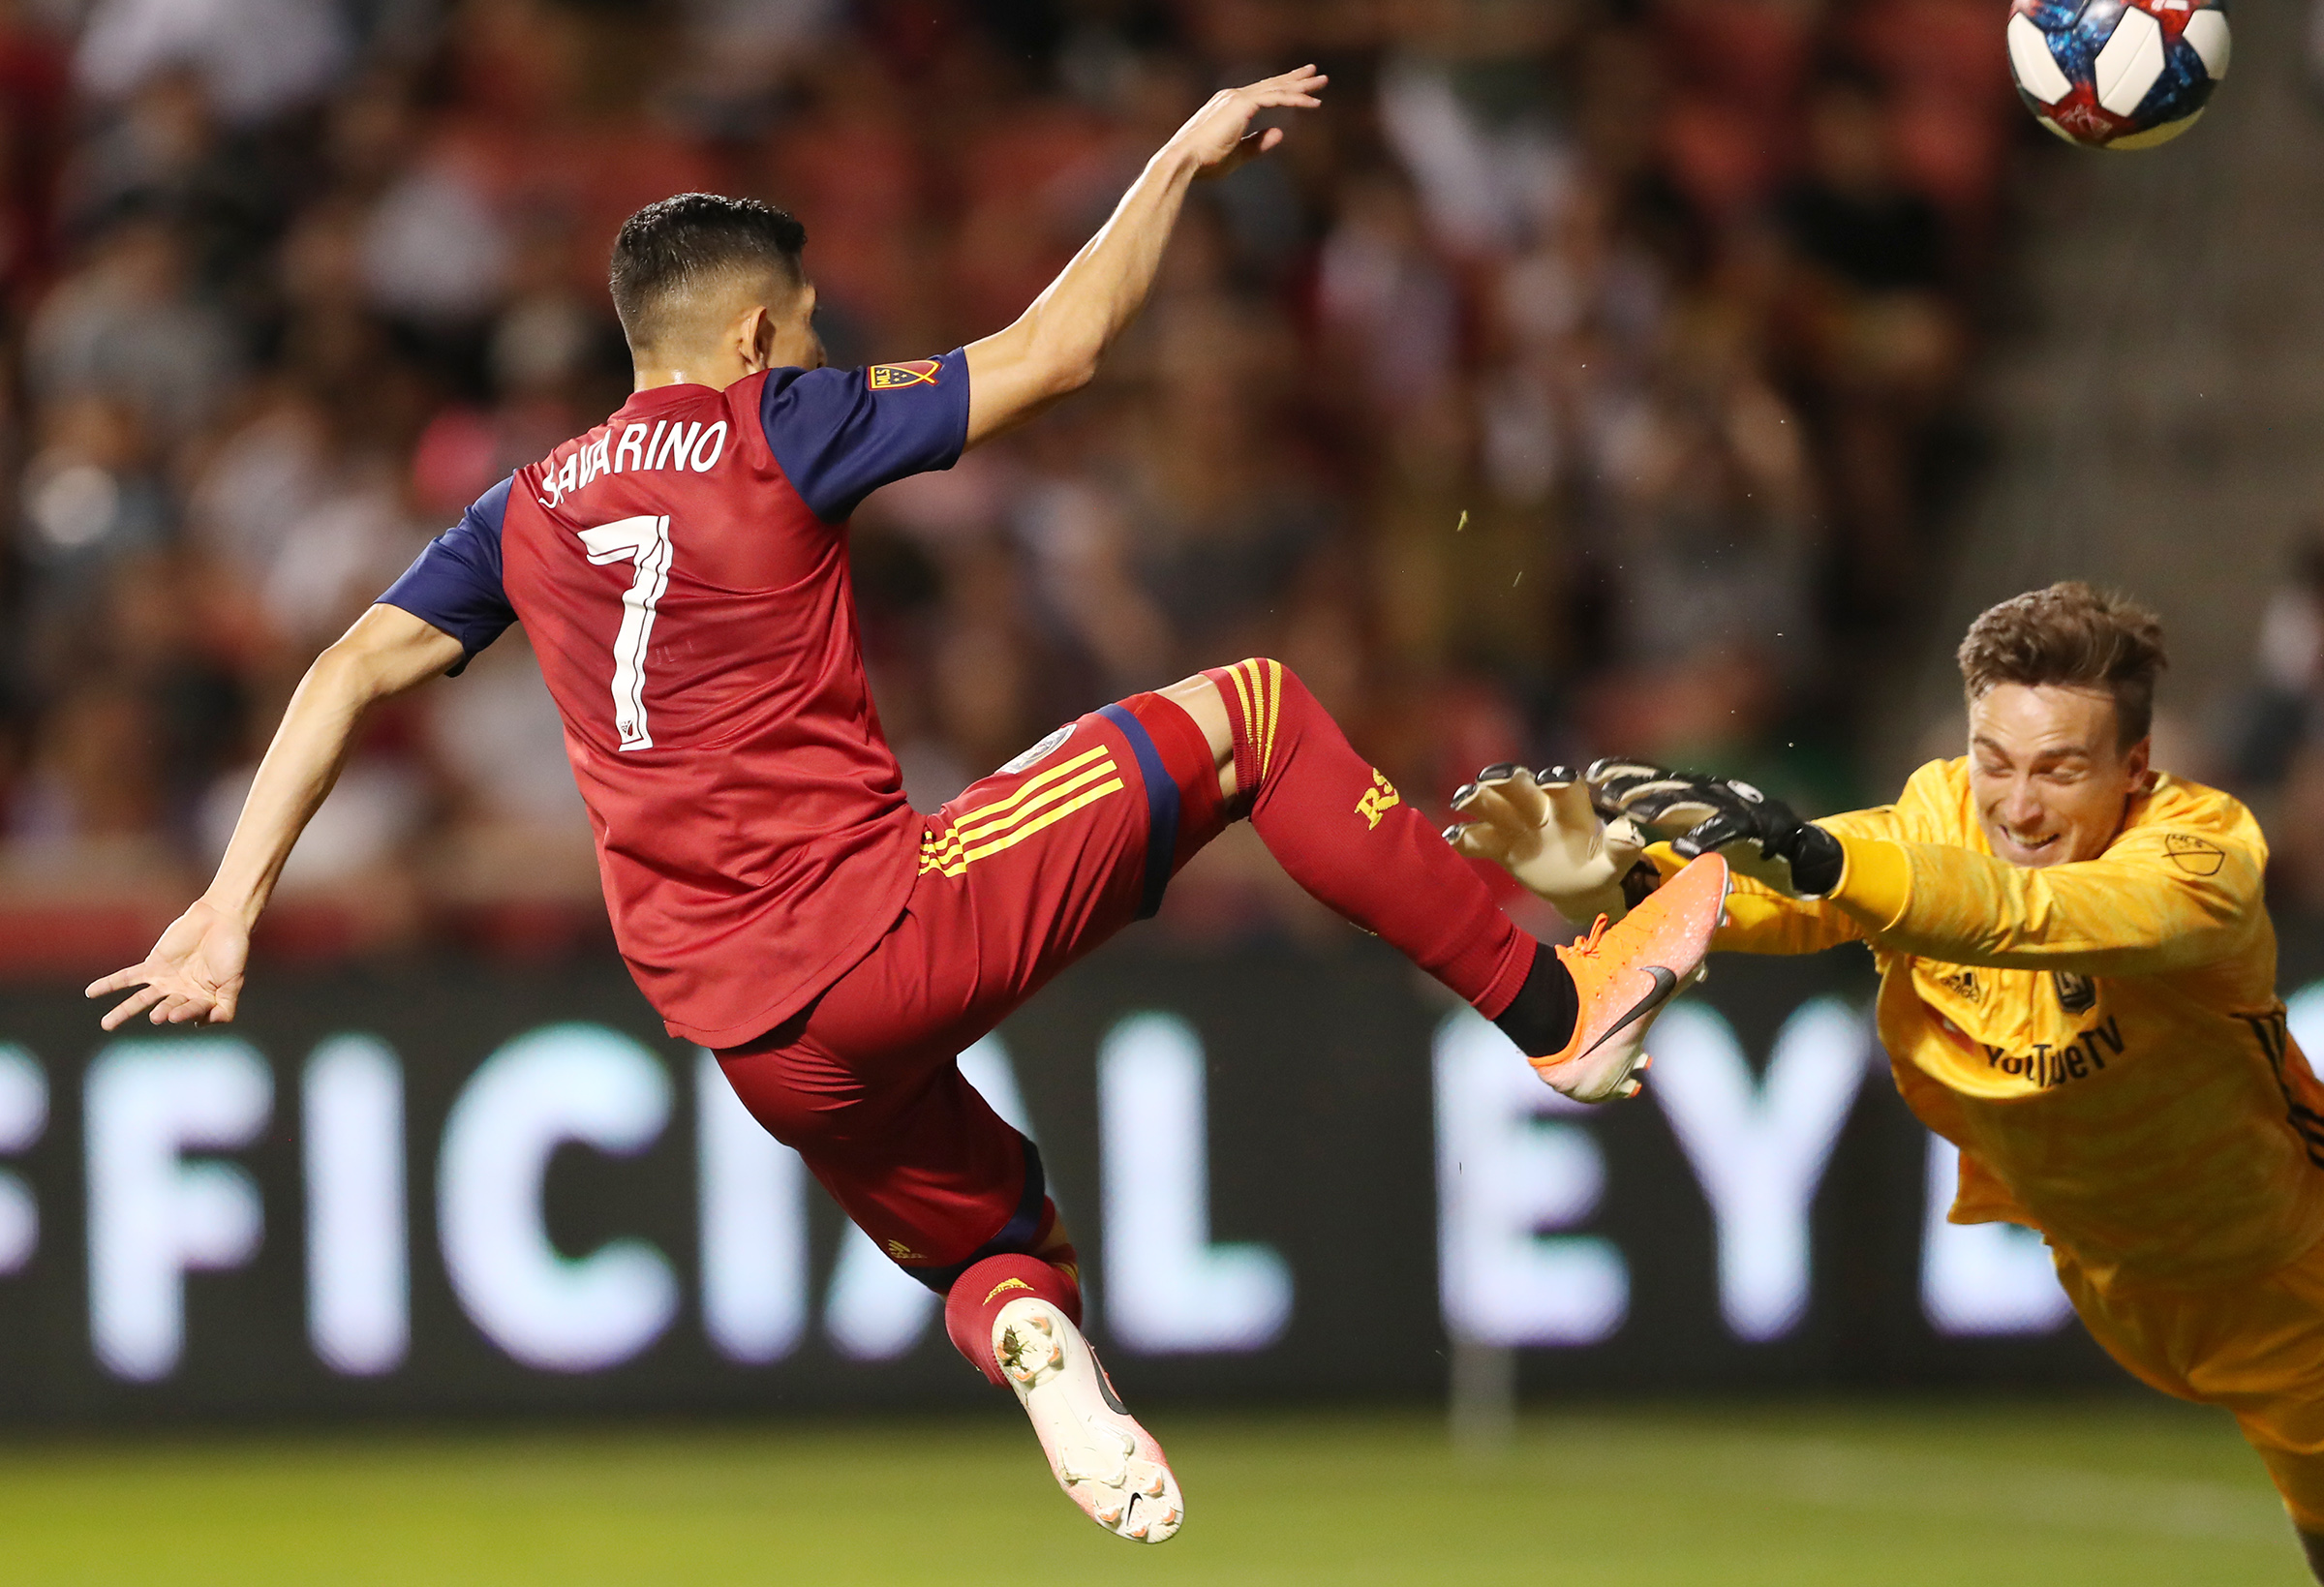 Real Salt Lake forward Jefferson Savarino (7) has his kick blocked by Los Angeles FC goalkeeper Tyler Miller (1) as Real Salt Lake and Los Angeles FC play at Rio Tinto Stadium in Sandy on Saturday, Aug. 17, 2019.